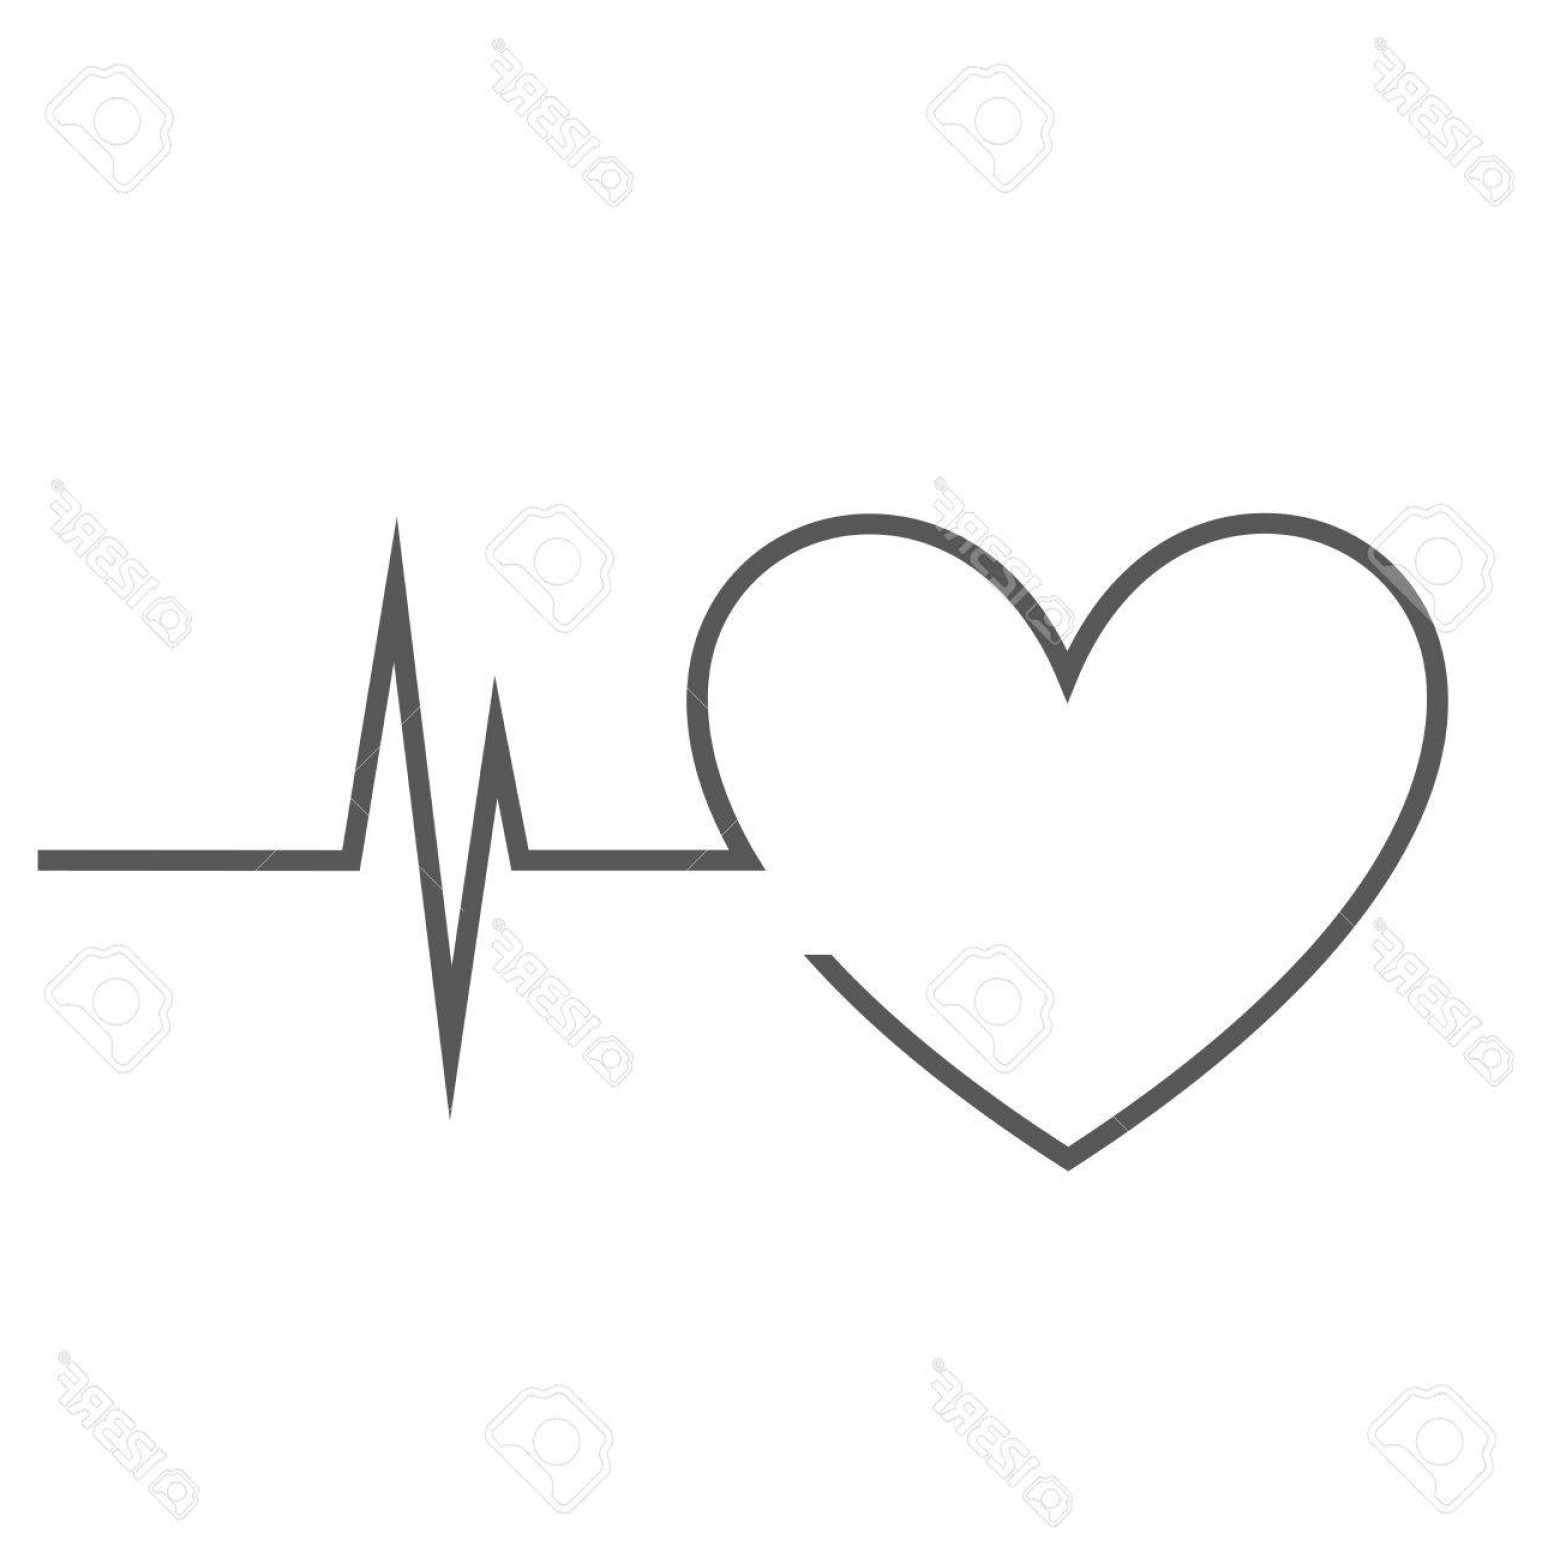 Heart With EKG Line Vector: Photostock Vector Hearth With Ekg Line On White Background Vector Illustration